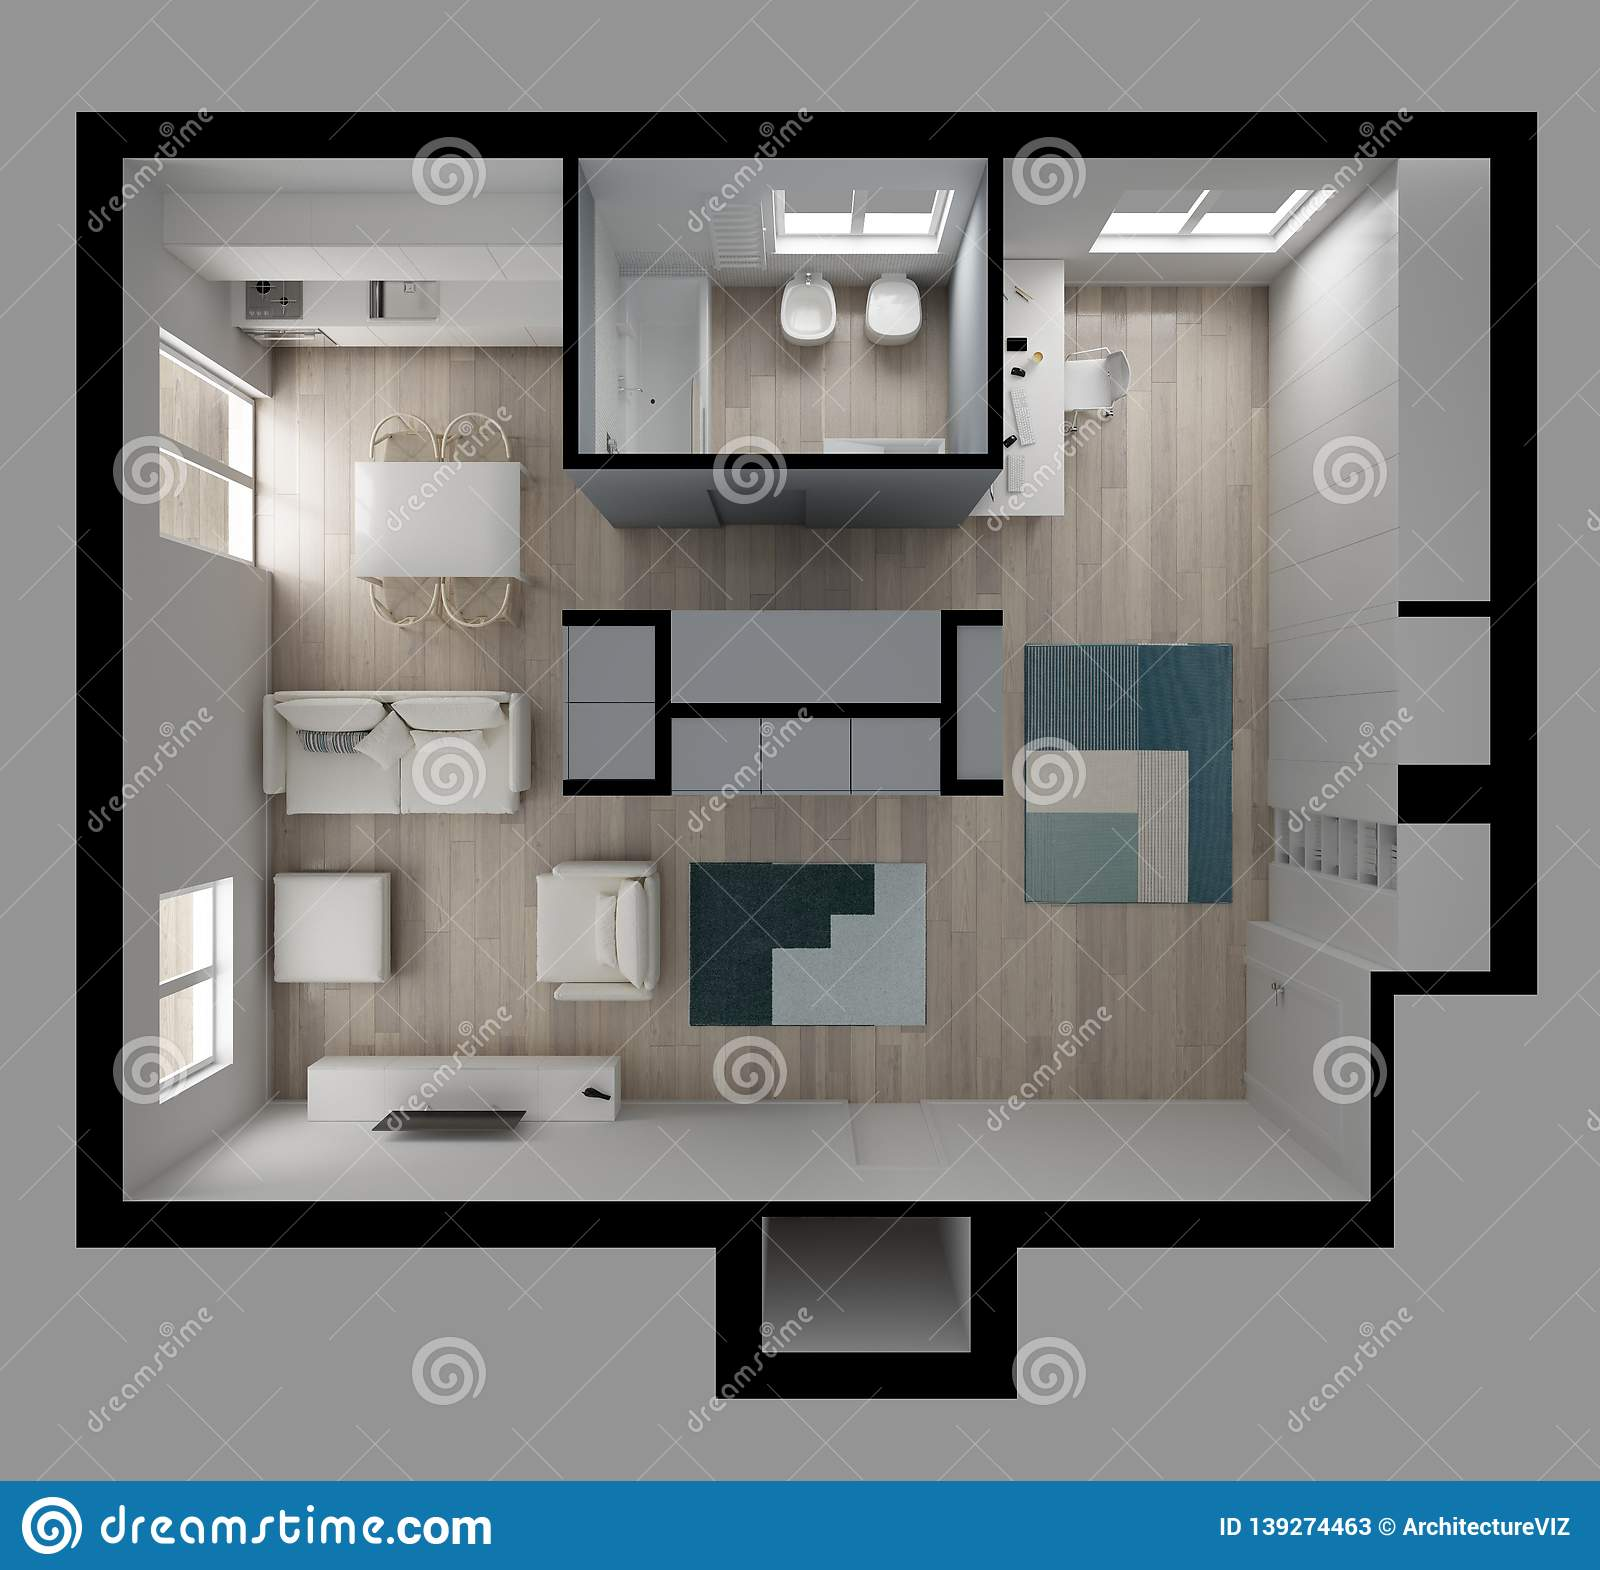 Flat Apartment: One Room Apartment Flat Top View, Furniture And Decors